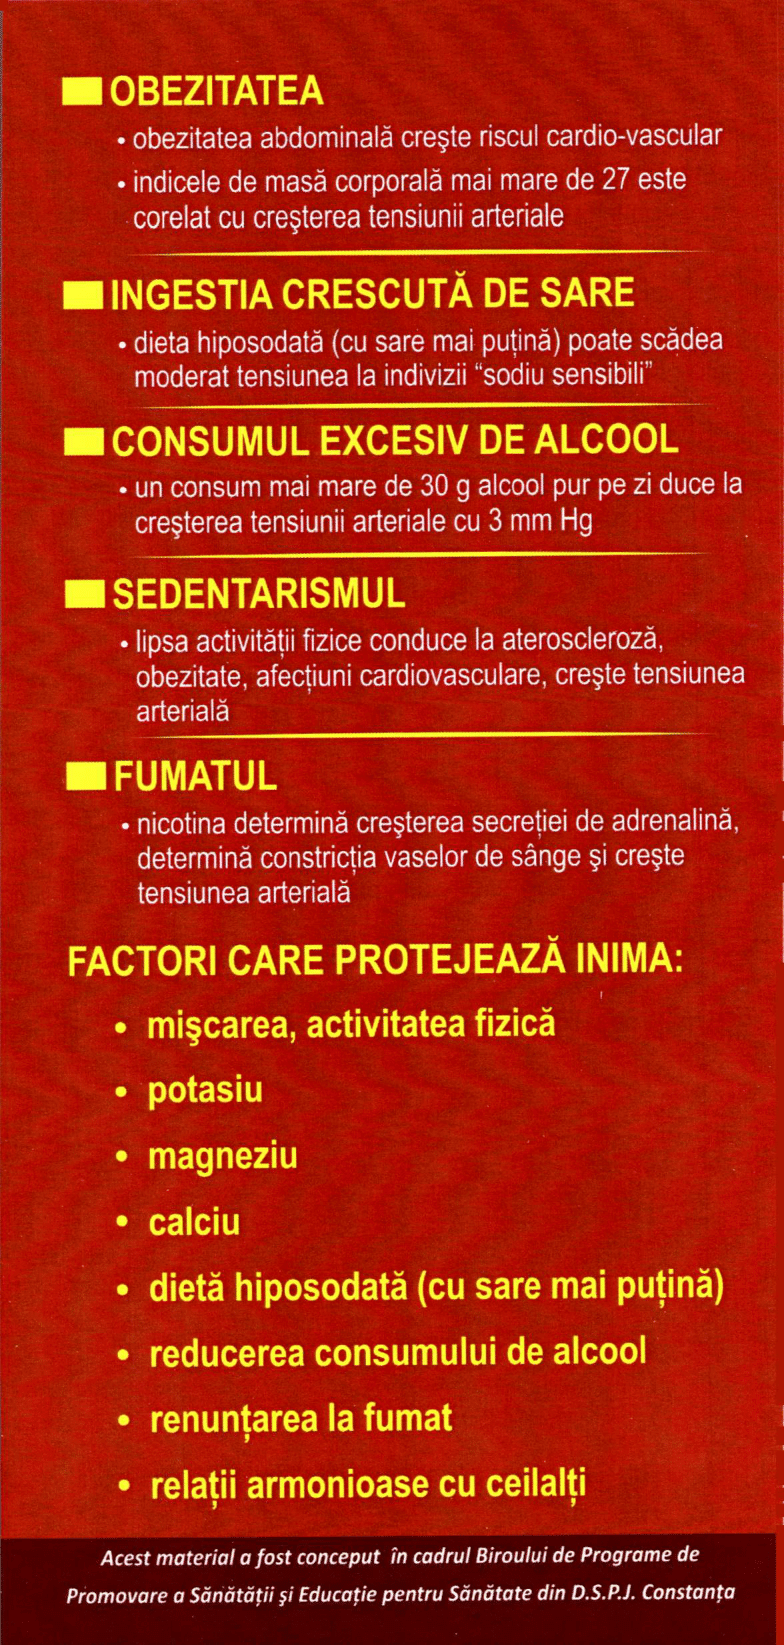 https://www.medstar2000.ro/wp-content/uploads/2019/02/FACTORI-CARE-PROTEJEAZA-INIMA-1.png